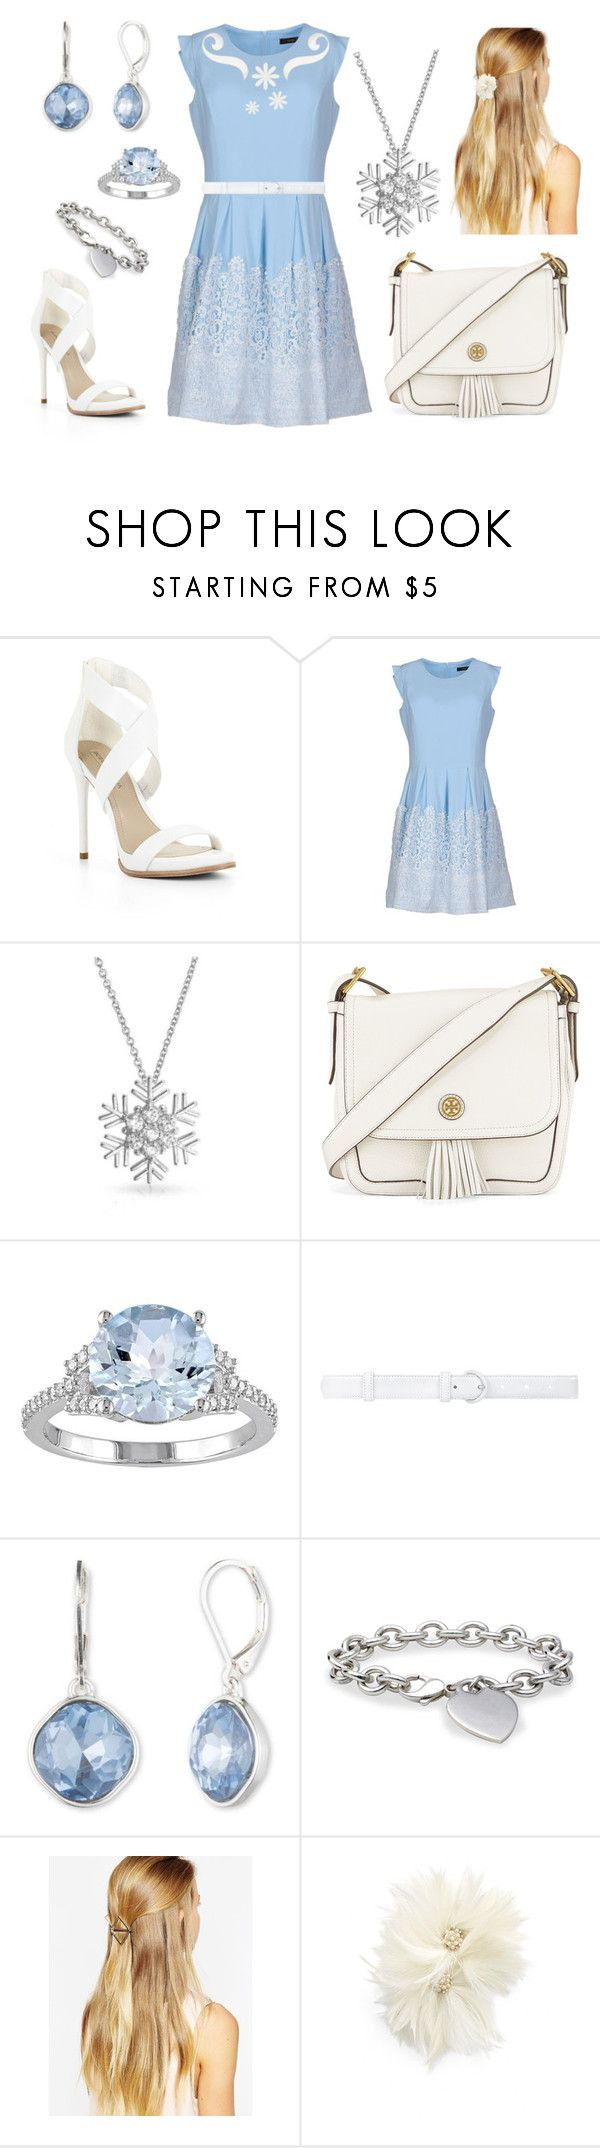 """Elena - Outfit 4: Descendants"" by sacredmaiden009 ❤ liked on Polyvore featuring BCBGMAXAZRIA, Soma, Bling Jewelry, Tory Burch, Oscar de la Renta, Vintage America, Blue Nile, DesignSix and Veil Trends"